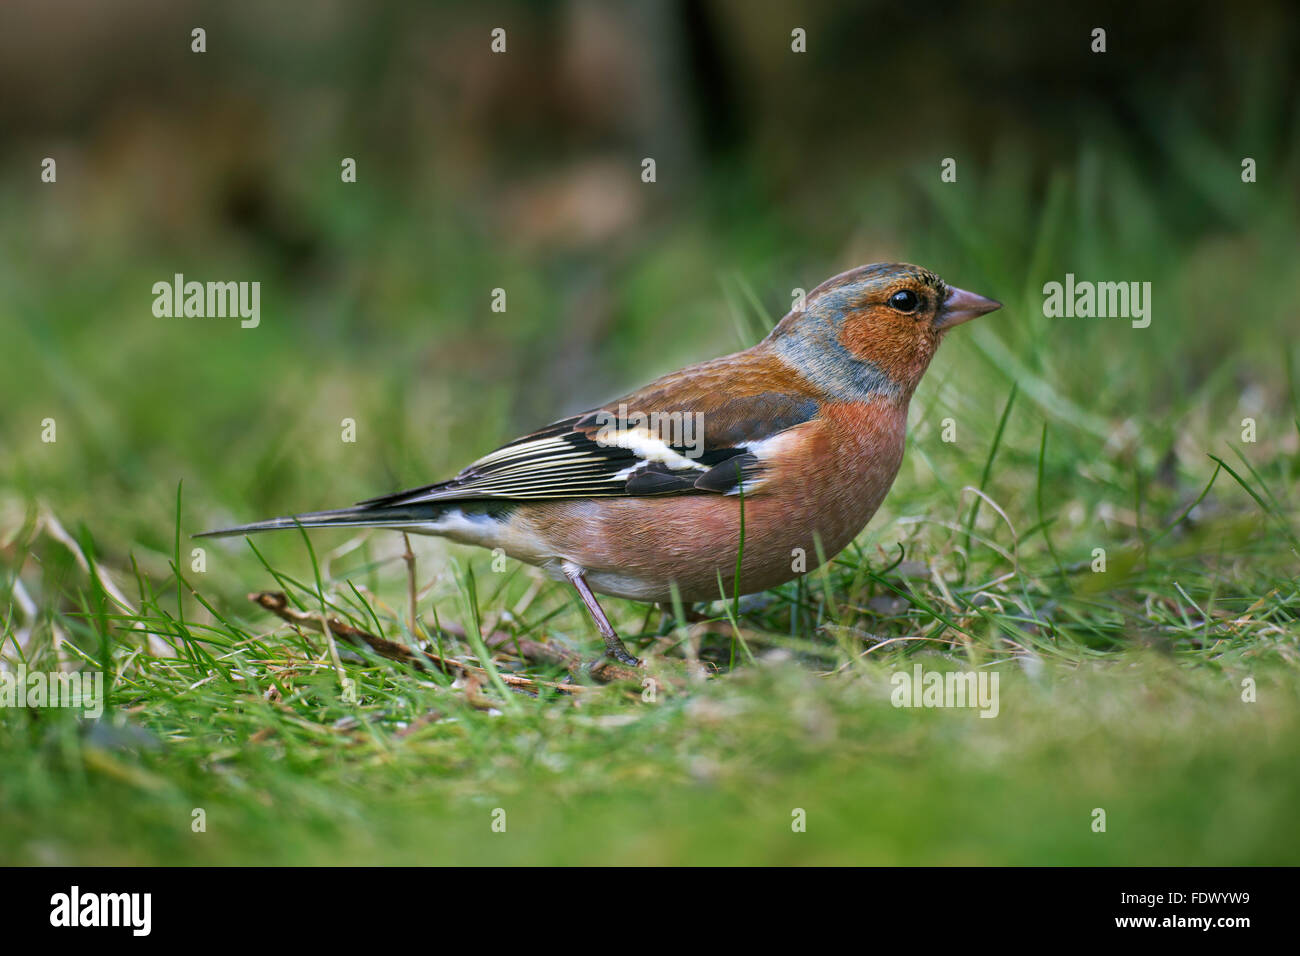 Common chaffinch (Fringilla coelebs) male foraging on the ground - Stock Image